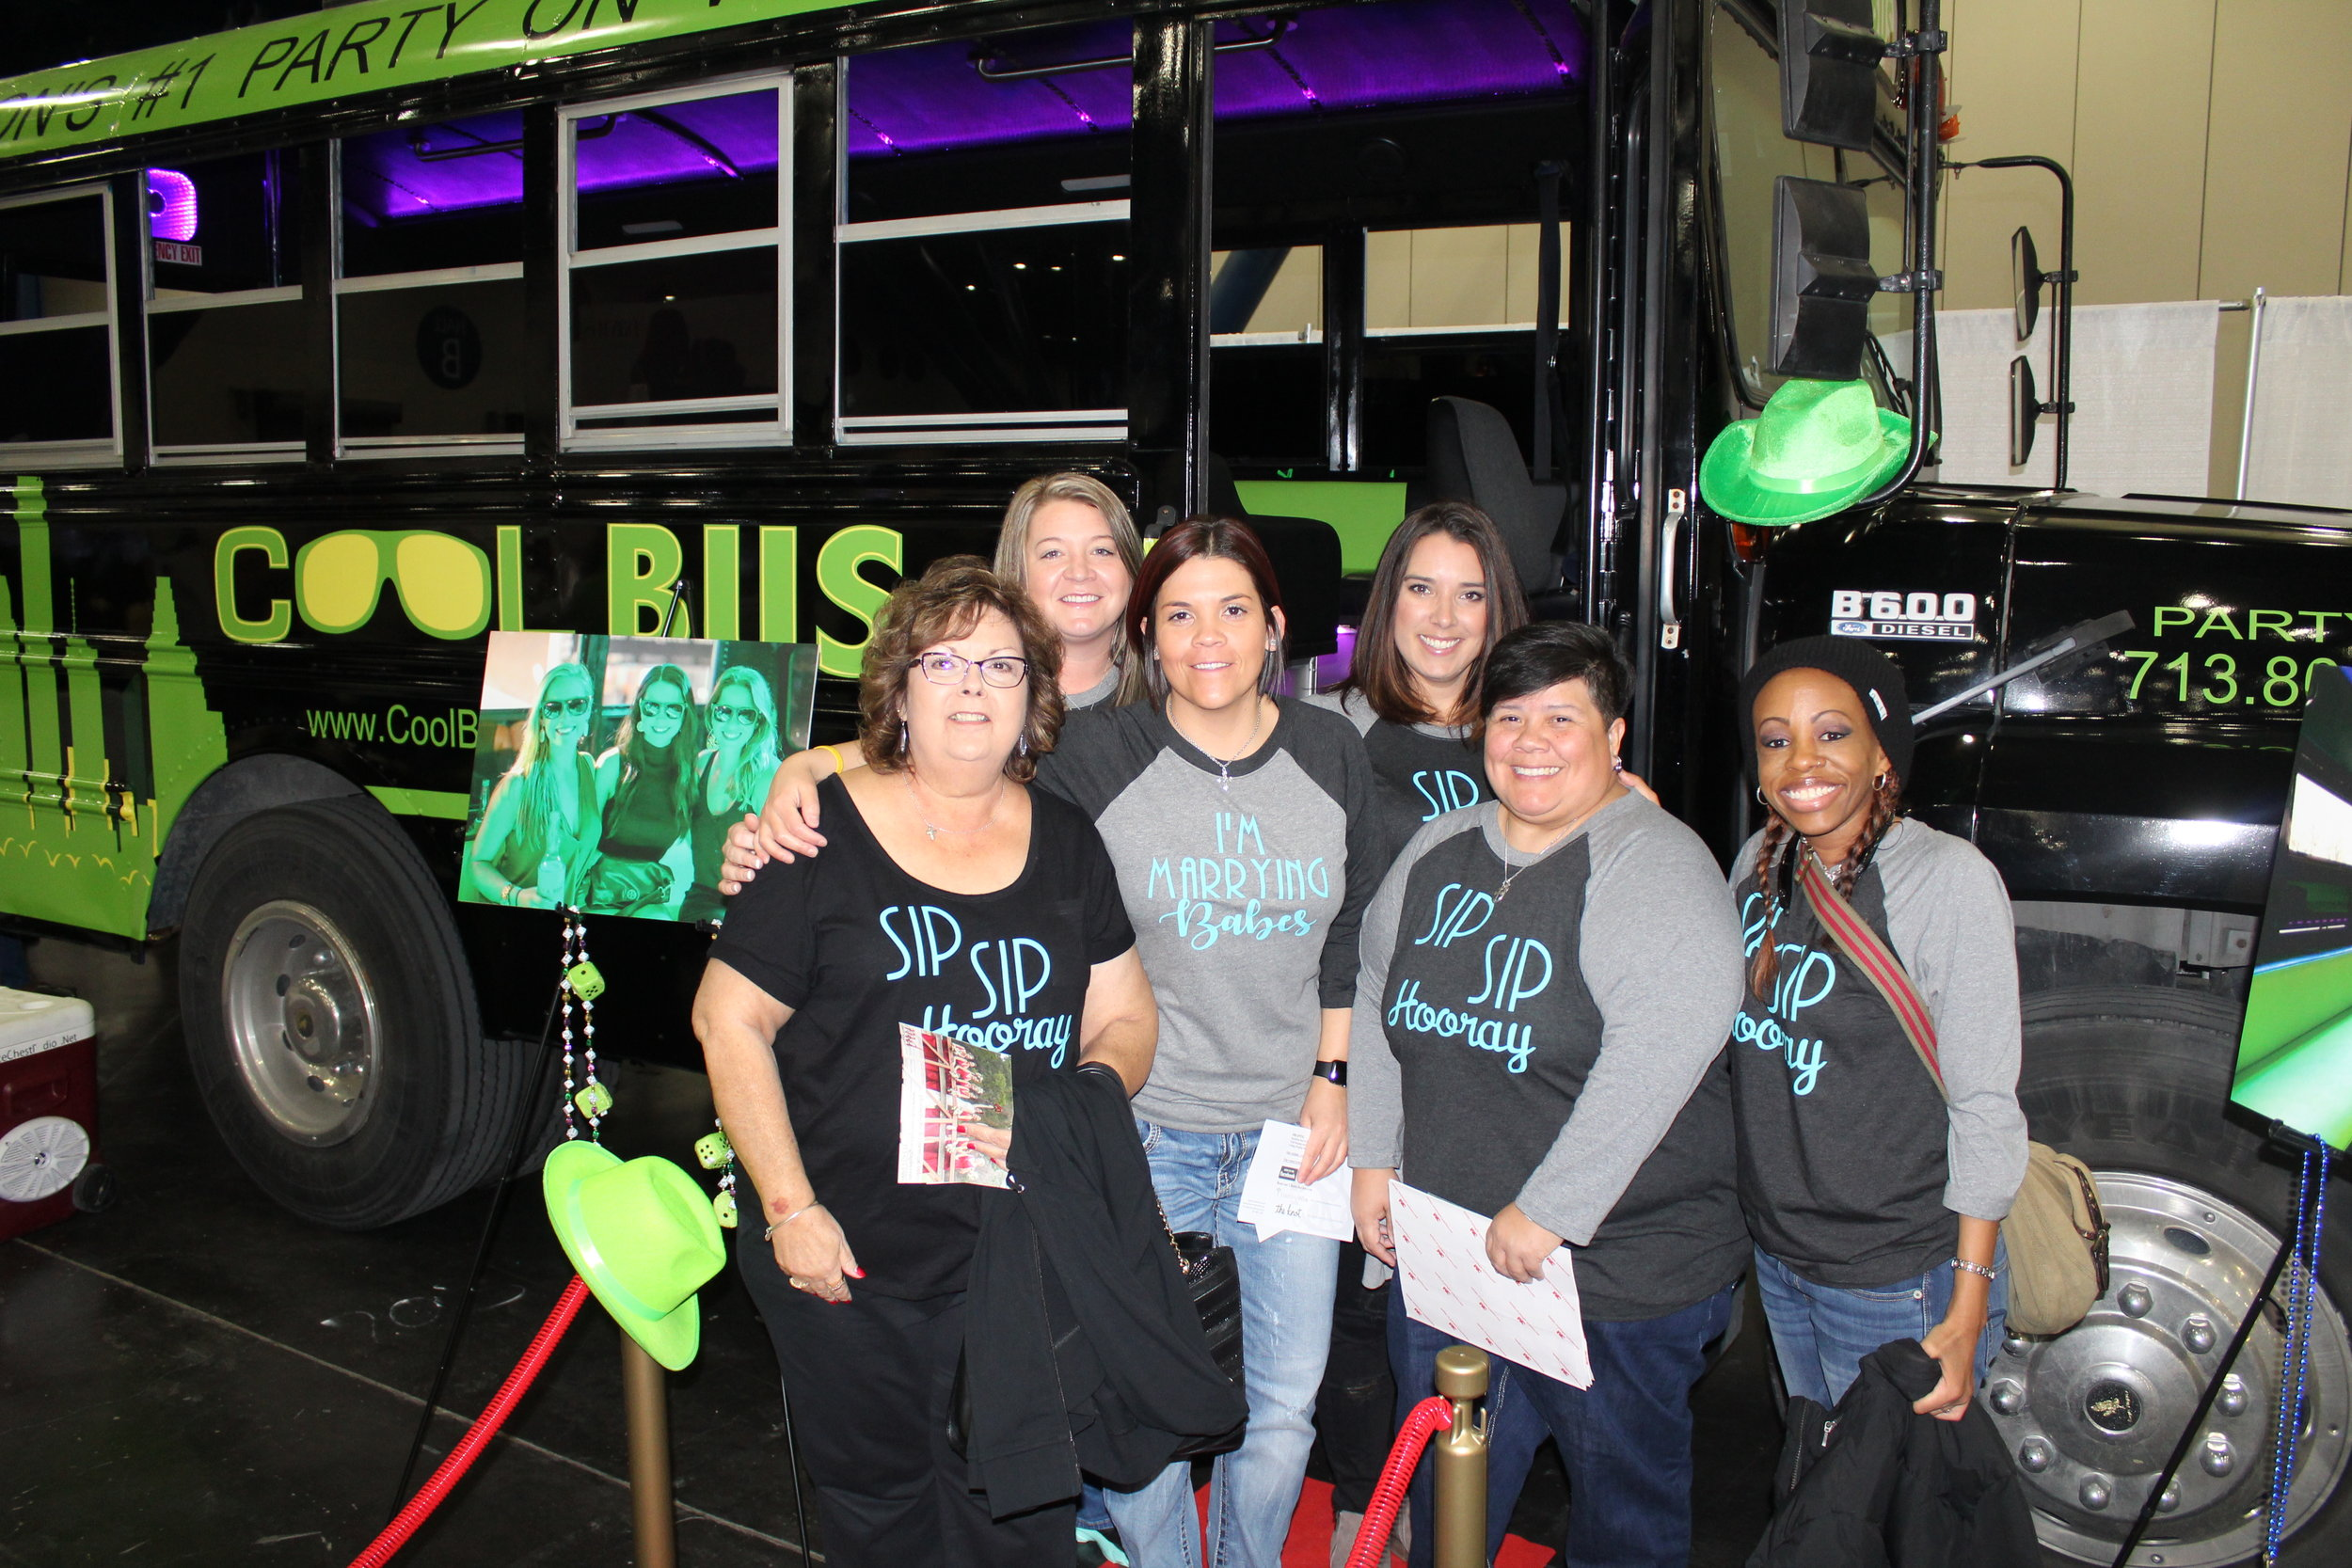 Cool Bus Houston - Houston party bus at The Bridal Extravaganza